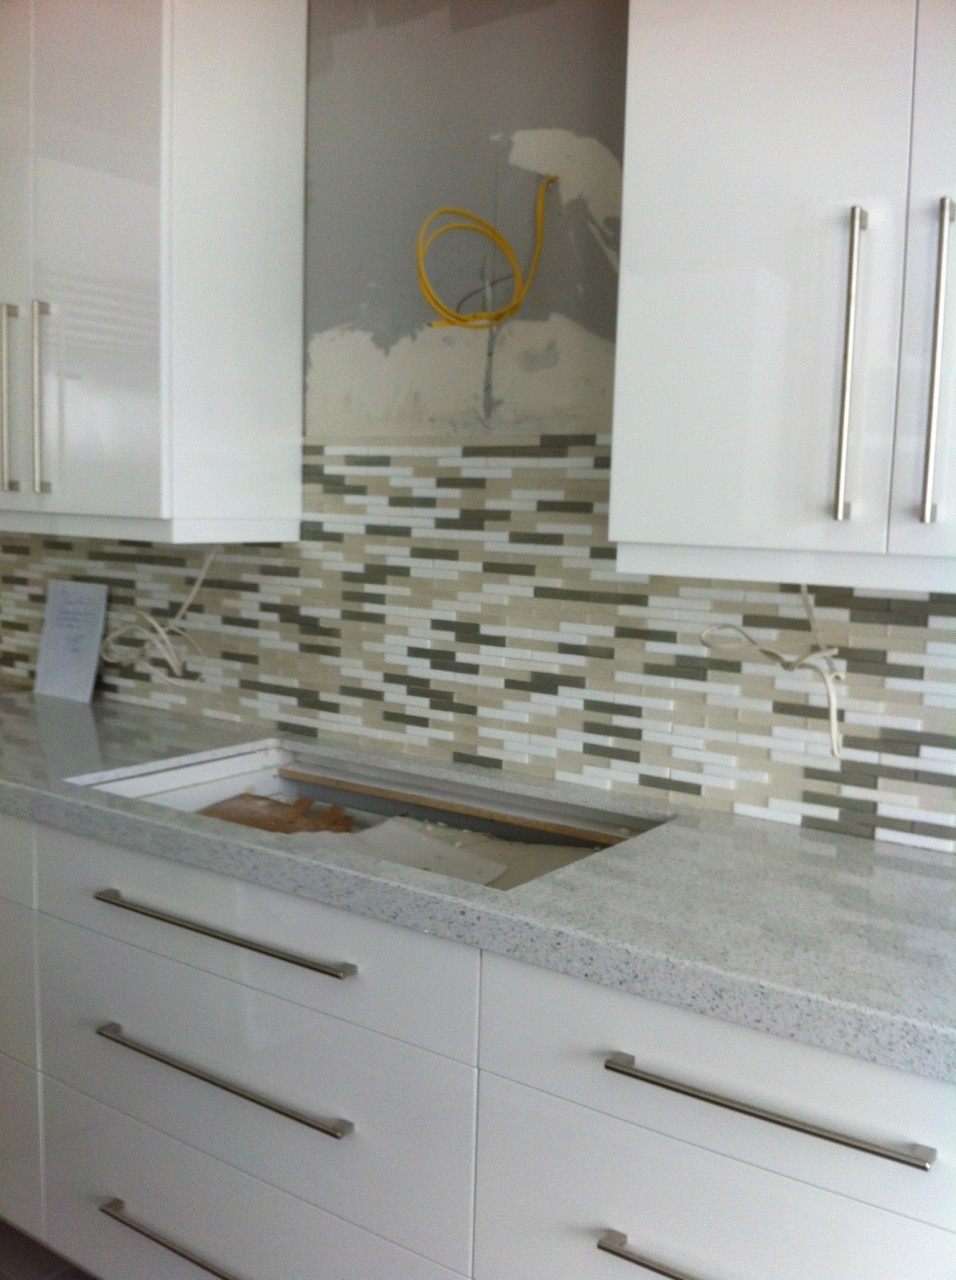 Palm beach kitchen remodeling from start to finish step 6 countertop